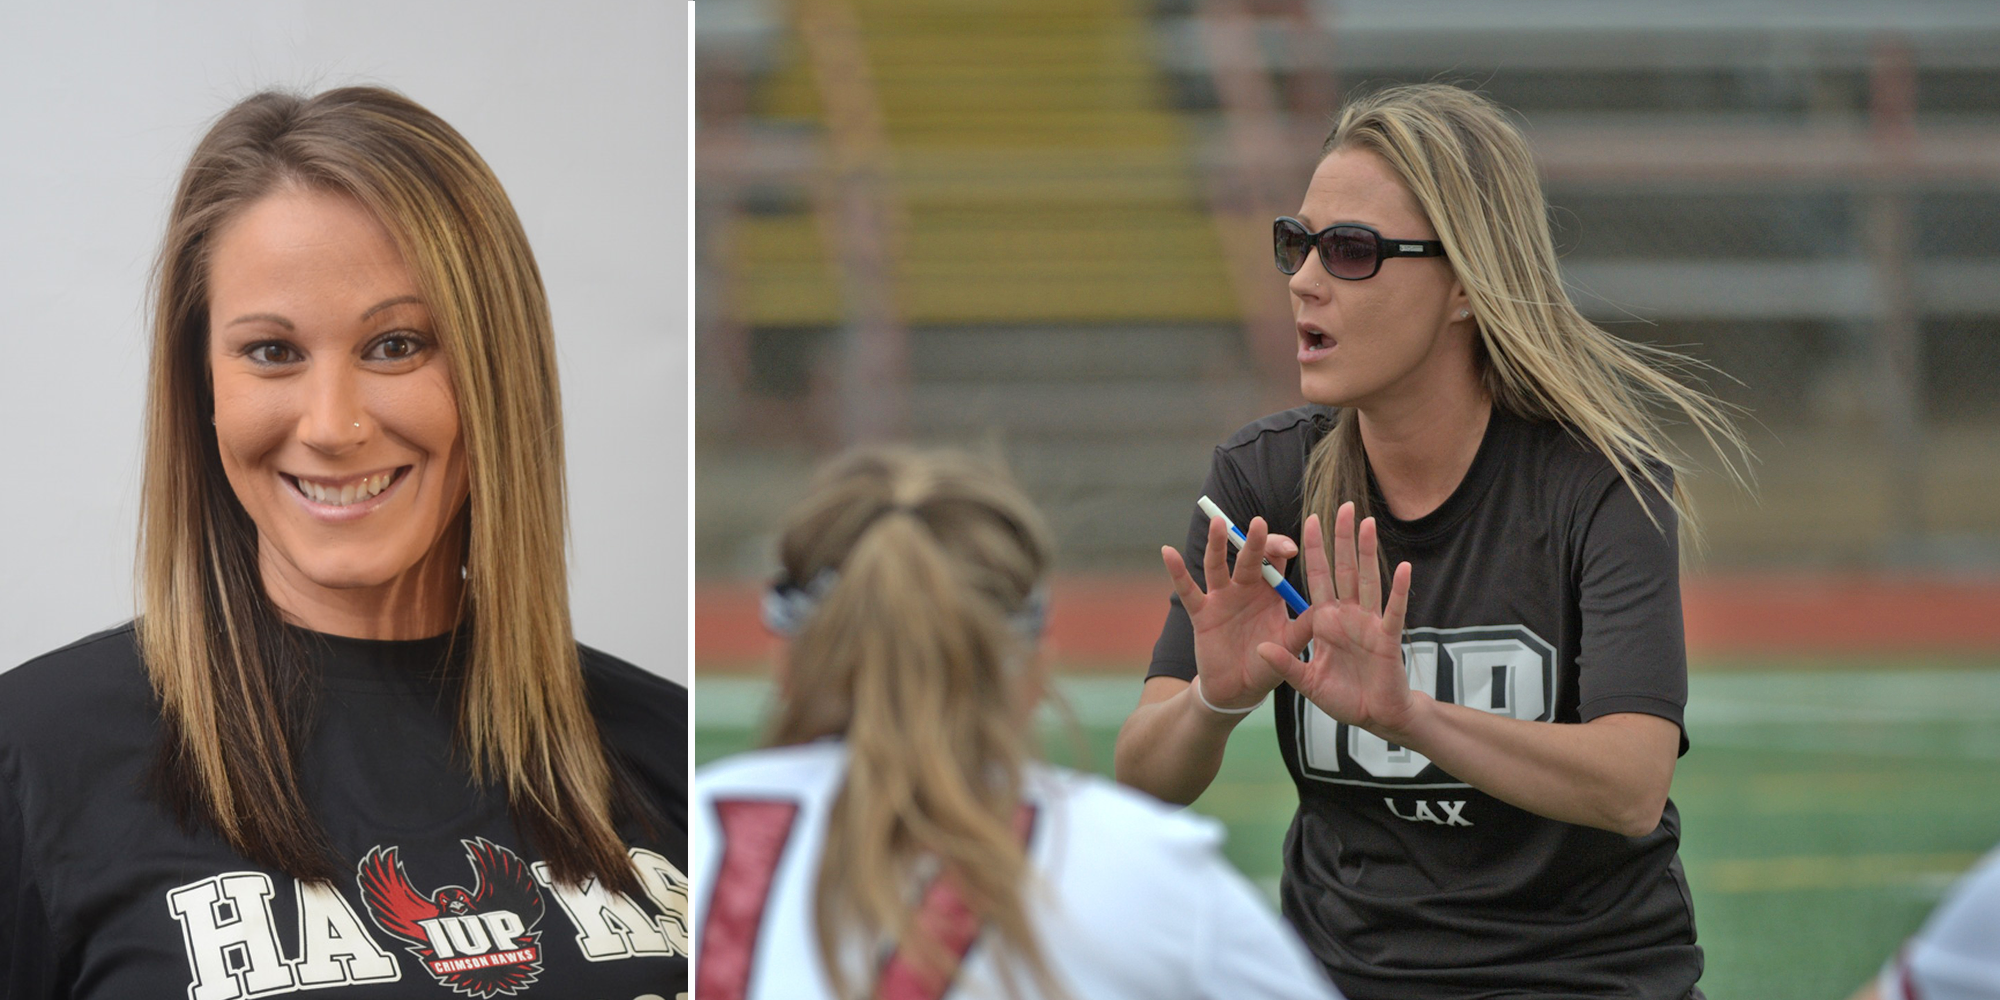 Richmond Tabbed to Helm Women's Lacrosse Program